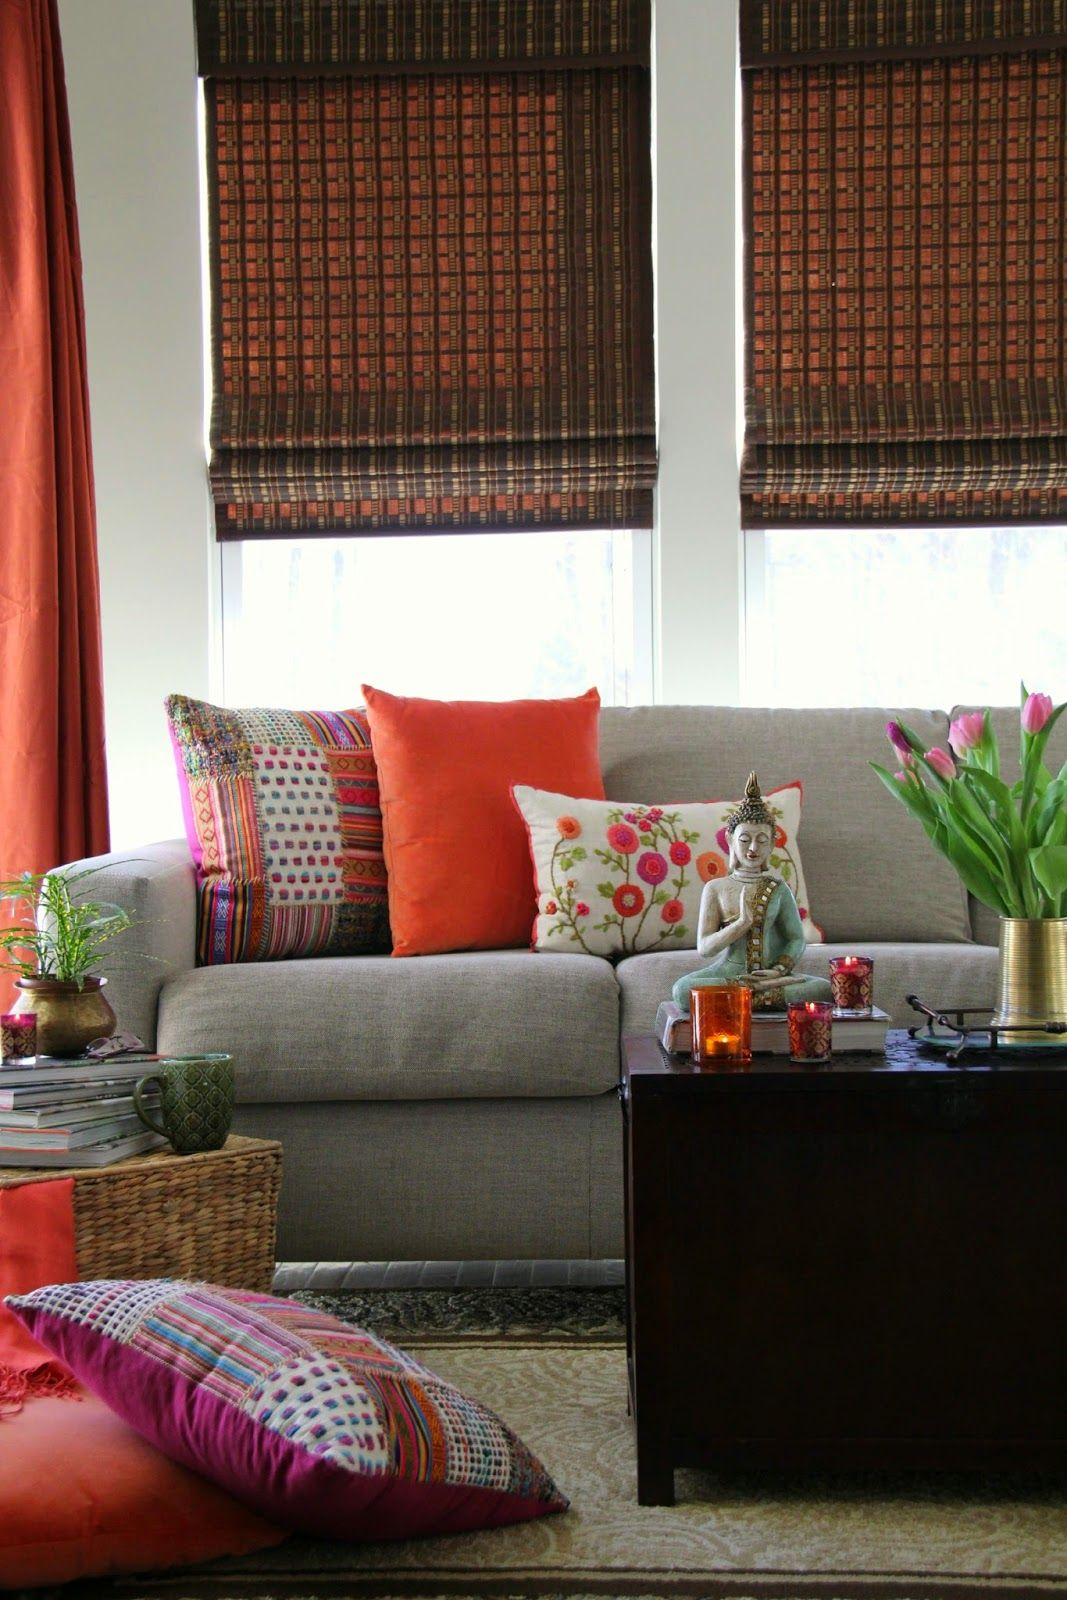 How Indian Inspired Is Your Livingroom Via Rajeesood